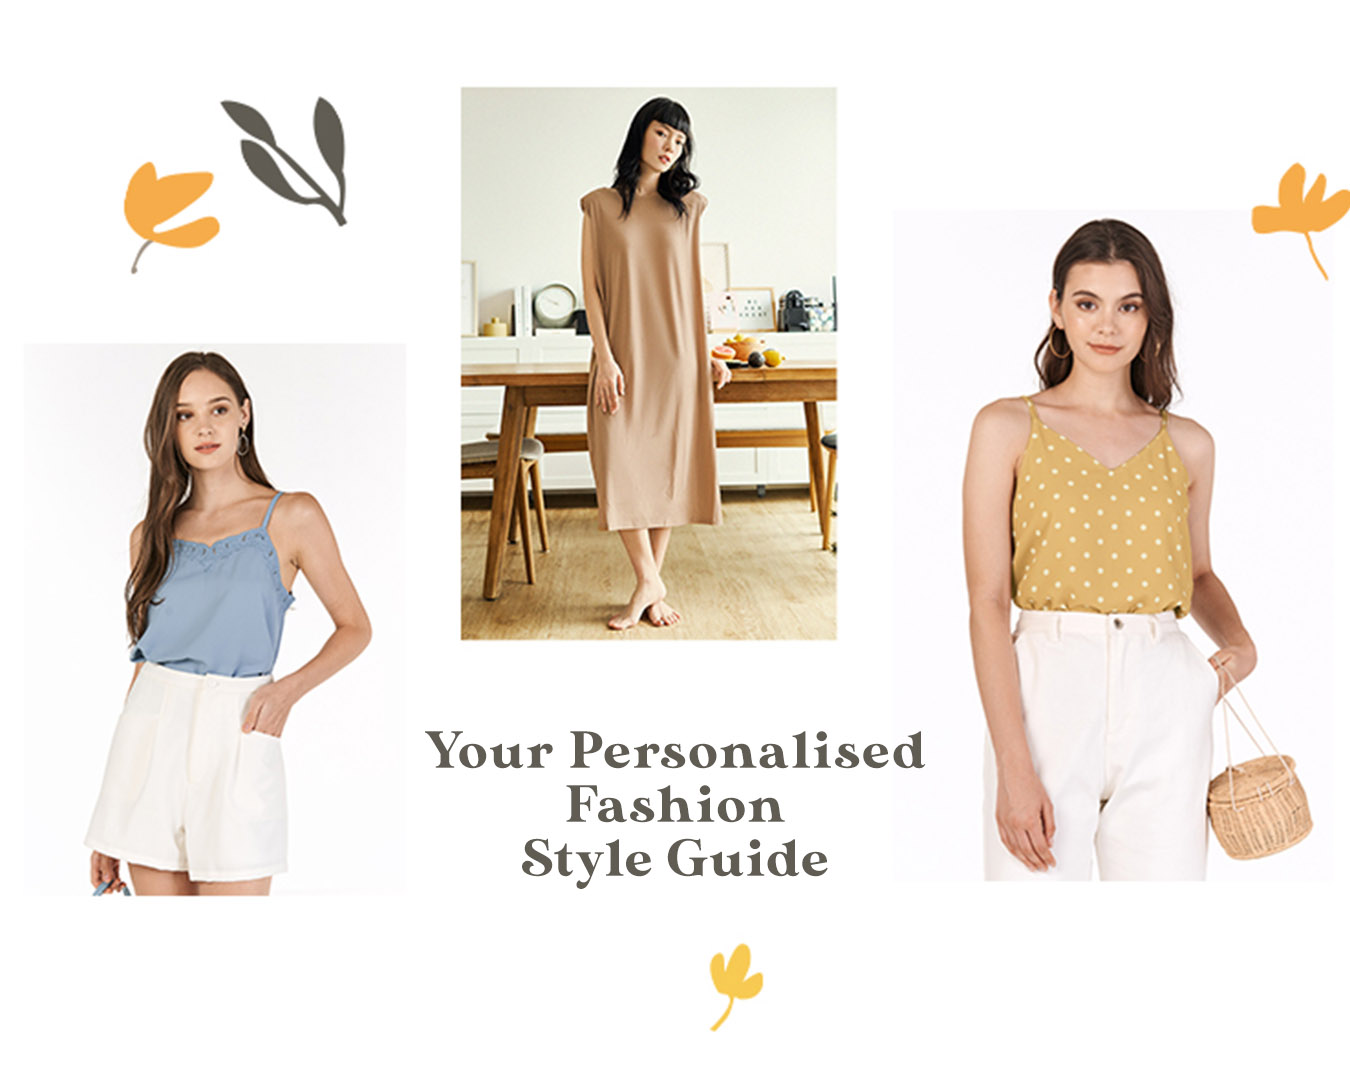 Your Personalised Fashion Style Guide!